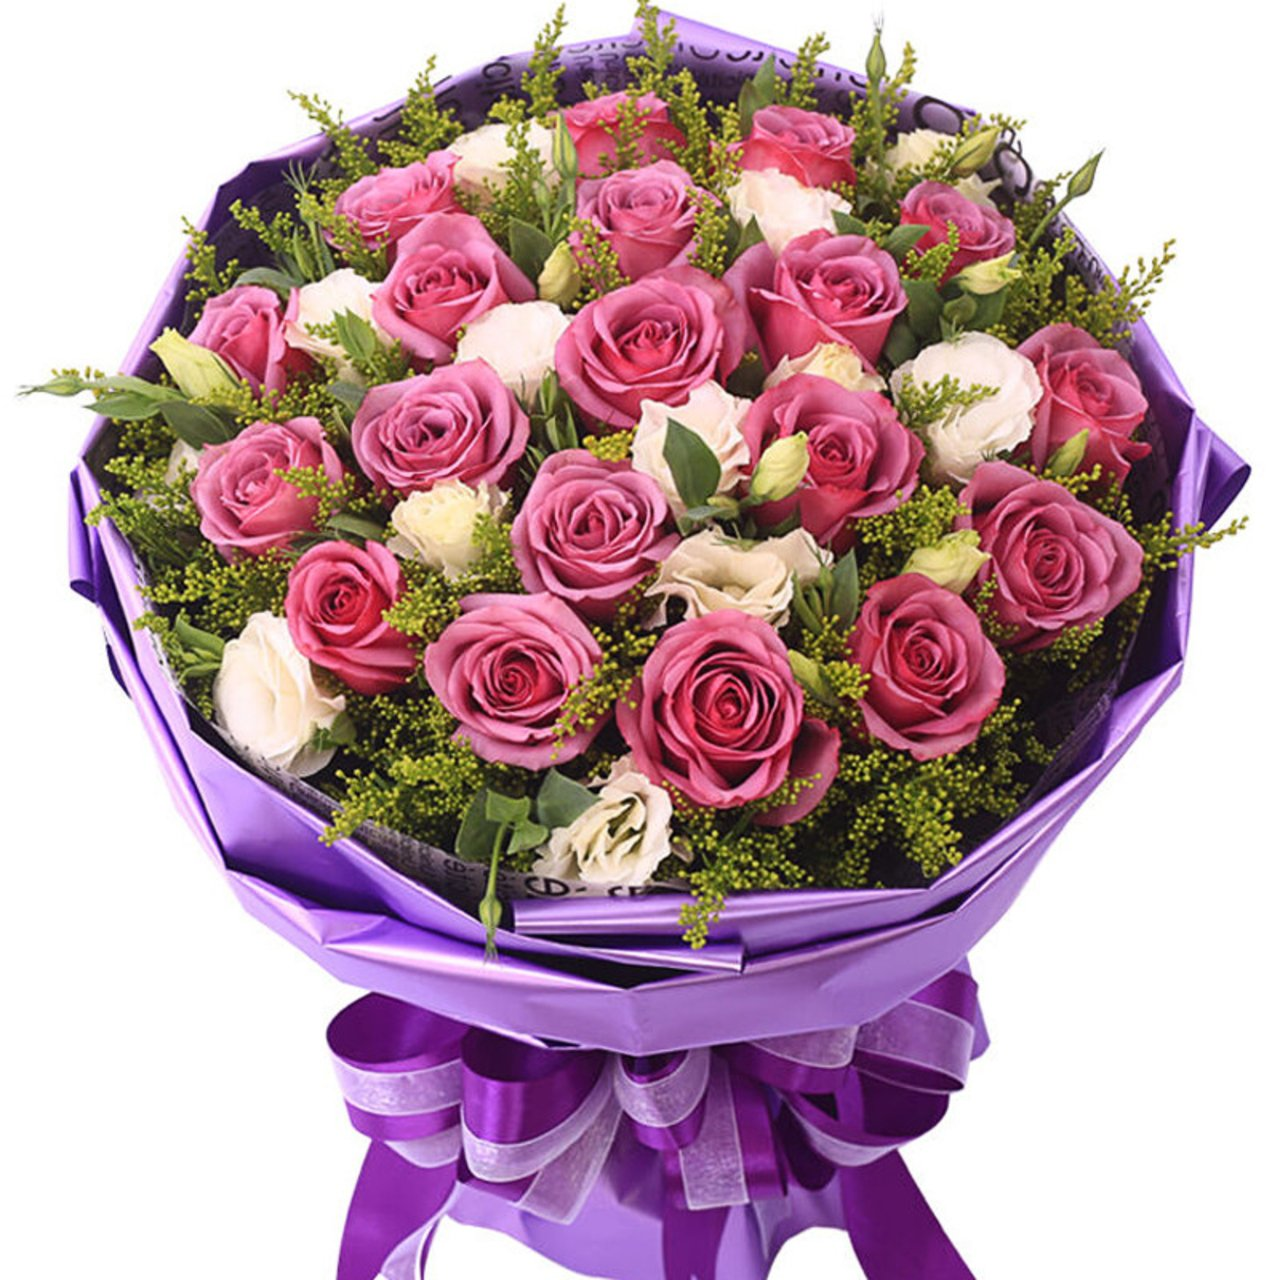 Crazy for you( 19 fine purple roses)